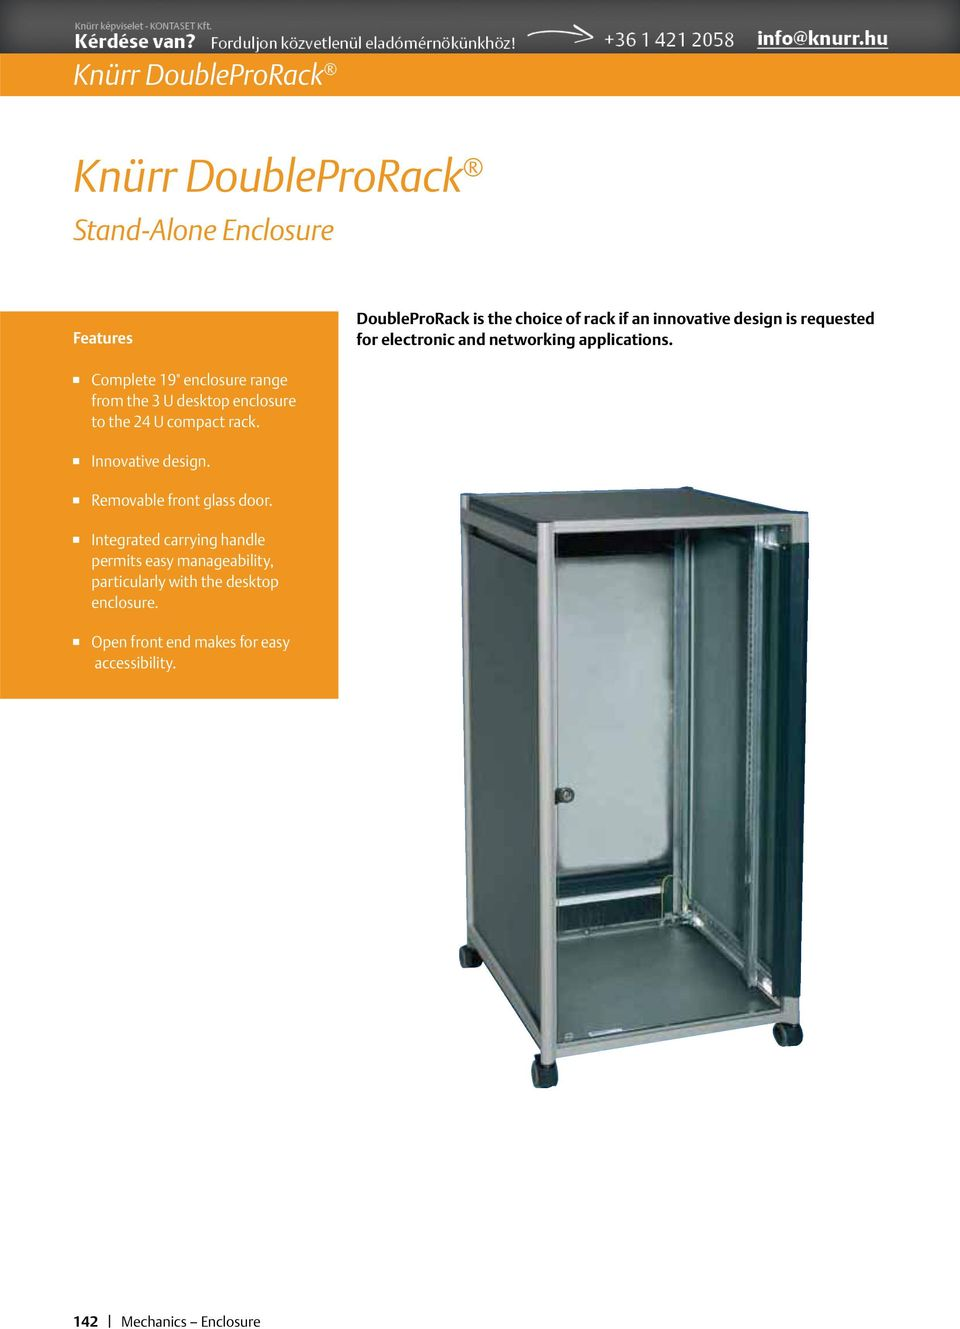 "Complete 19"" enclosure range from the 3 U desktop enclosure to the 24 U compact rack. Innovative design."